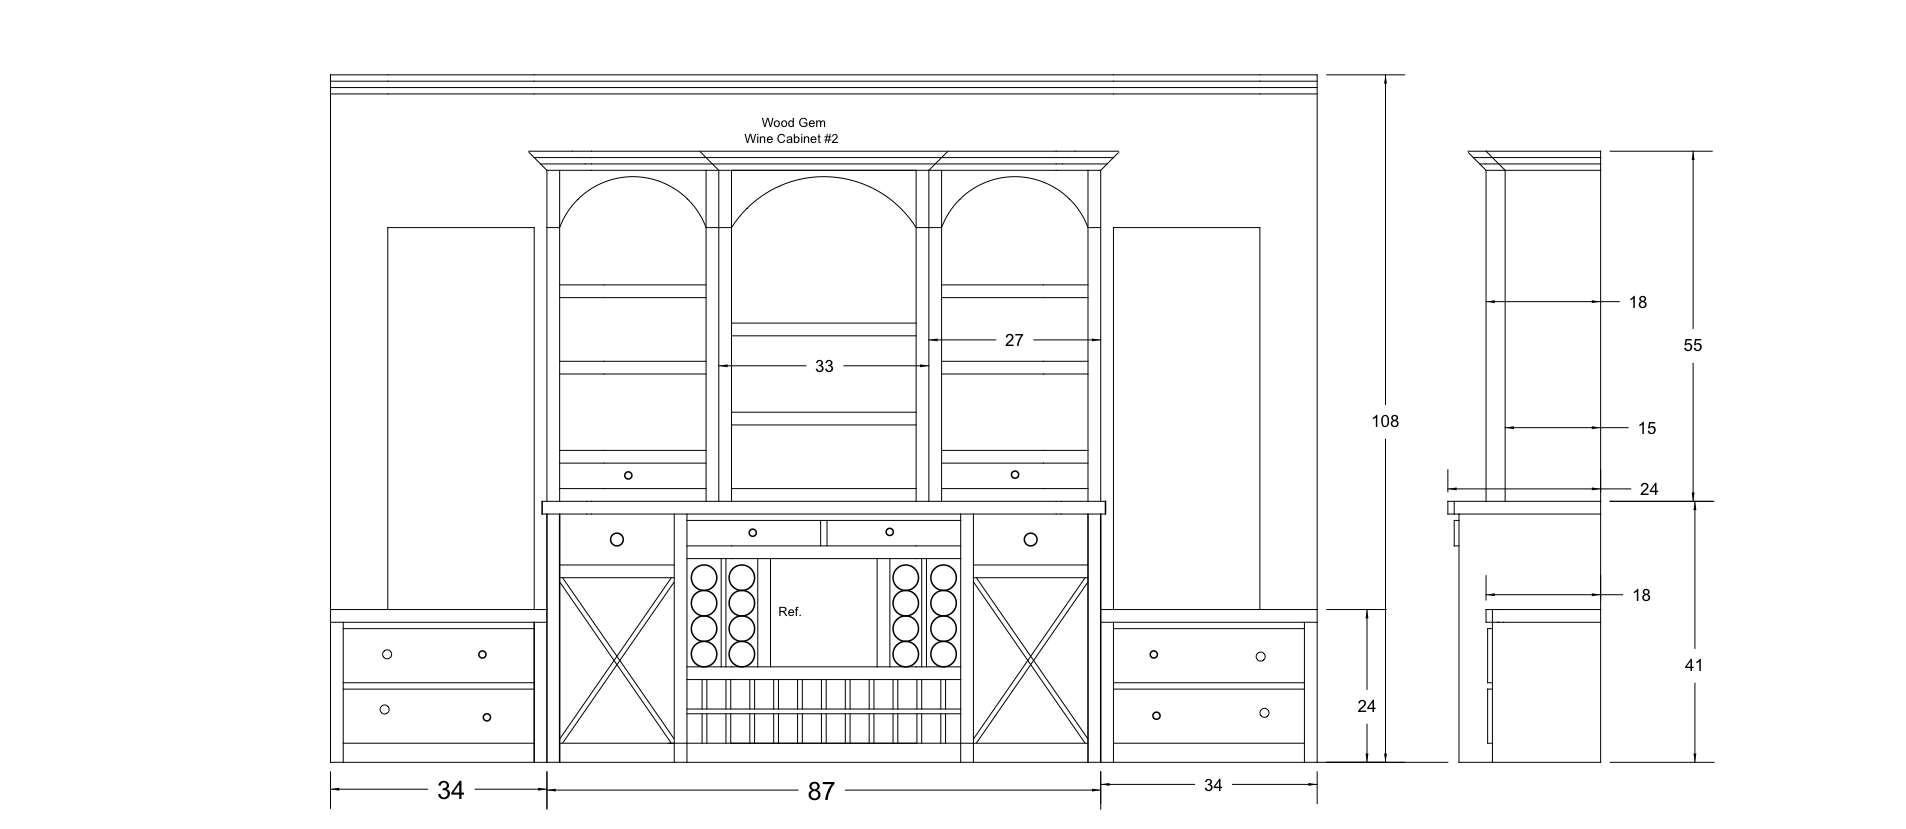 Wine Cabinet #2.png